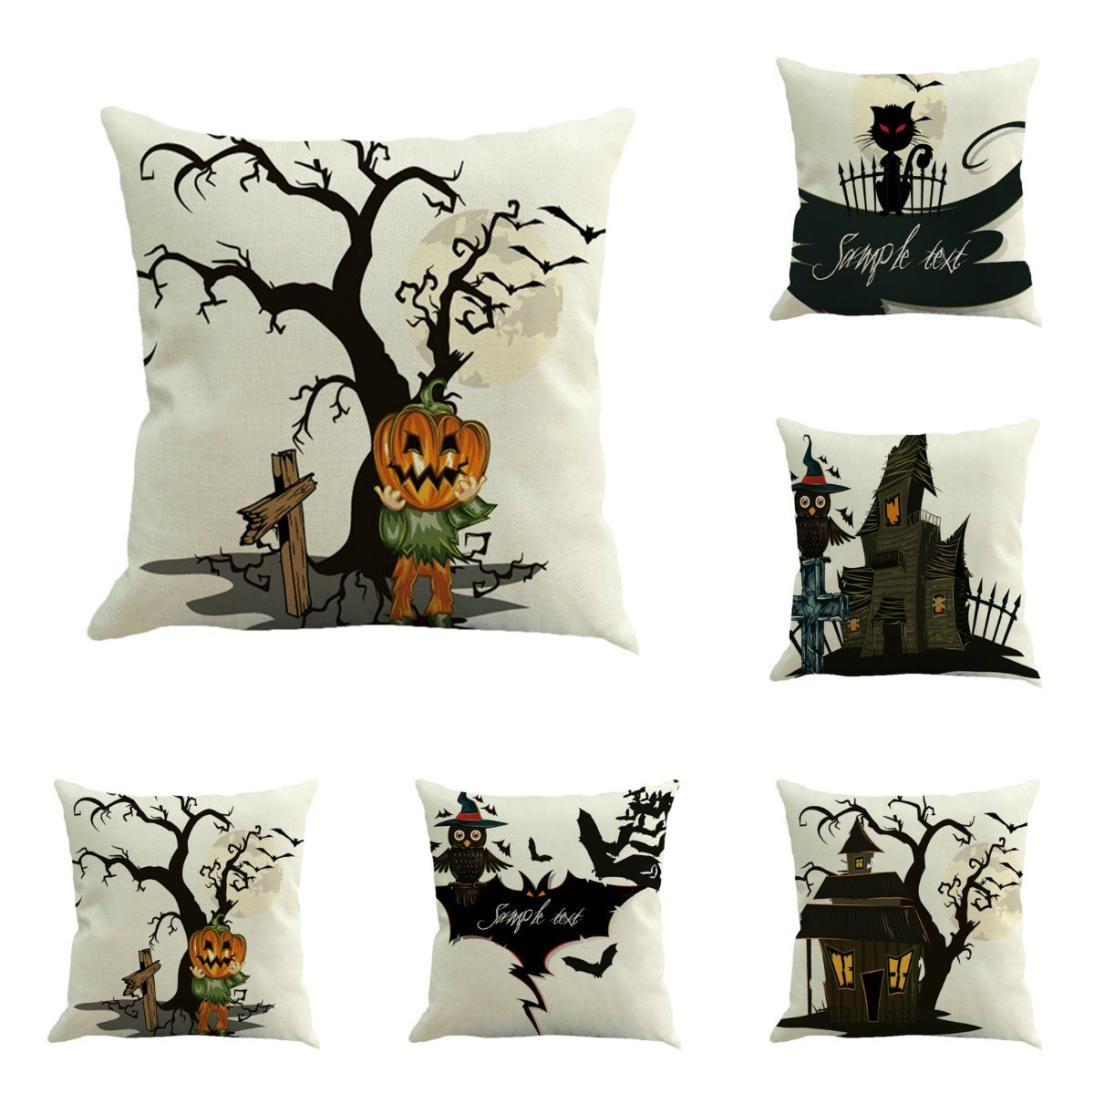 Gotd Vintage Halloween Pillow Covers Decorative Throw Pillow Case Cushion Happy Halloween Decorations Decor Clearance Indoor Outdoor Festive Party Supplies (Multicolor A)